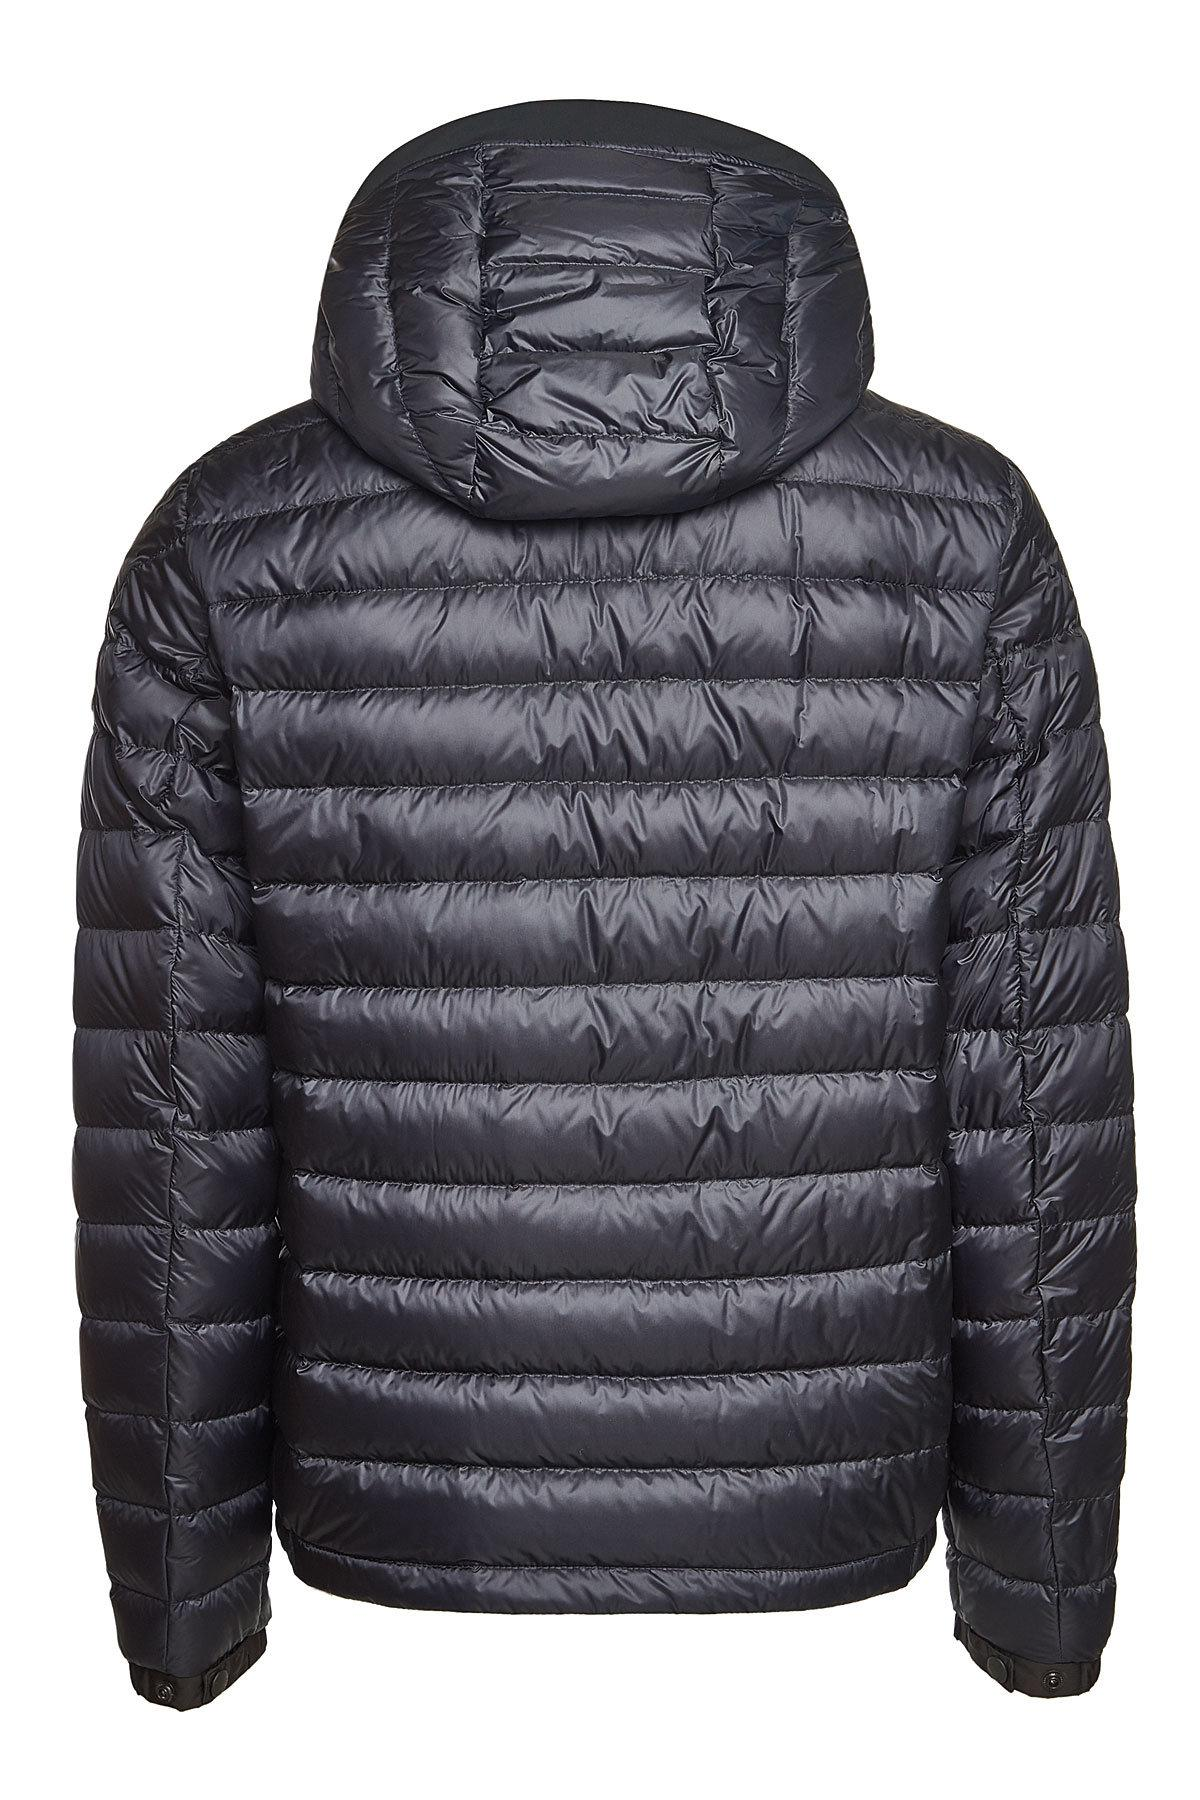 4f397fc6ae4e Lyst - Moncler Morvan Quilted Down Jacket in Black for Men